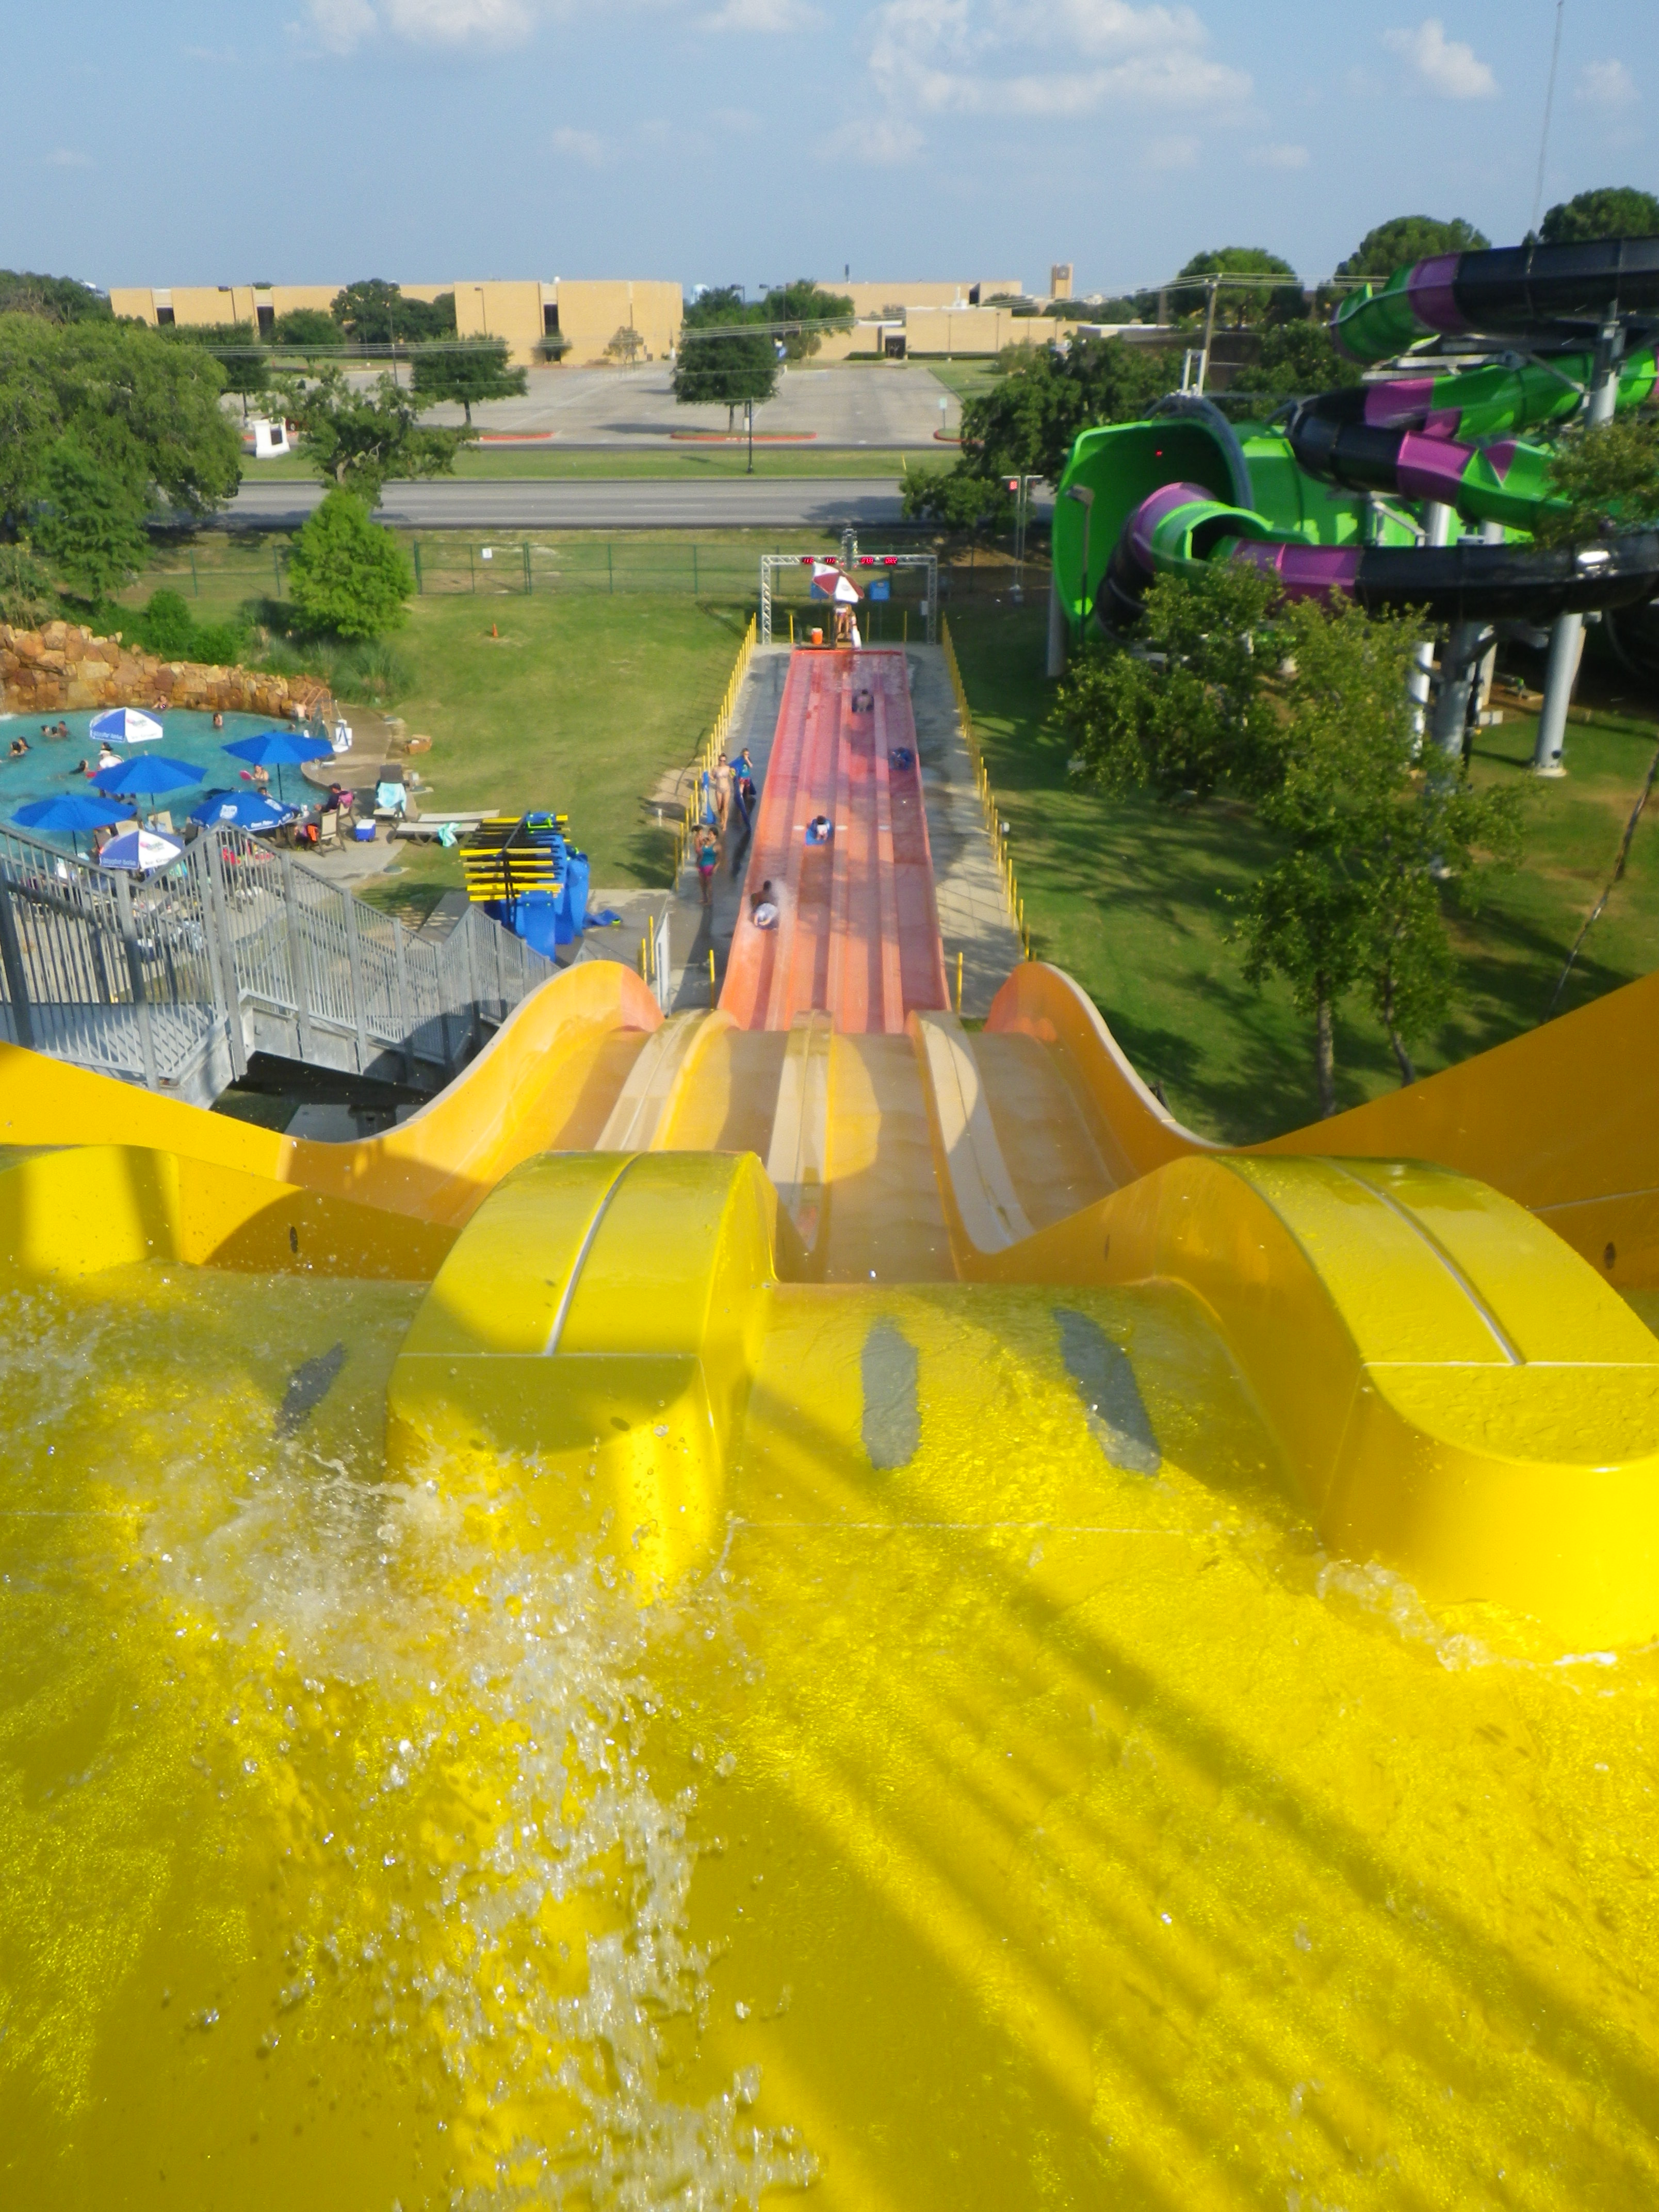 Nrh2o Water Park North Richland Hills